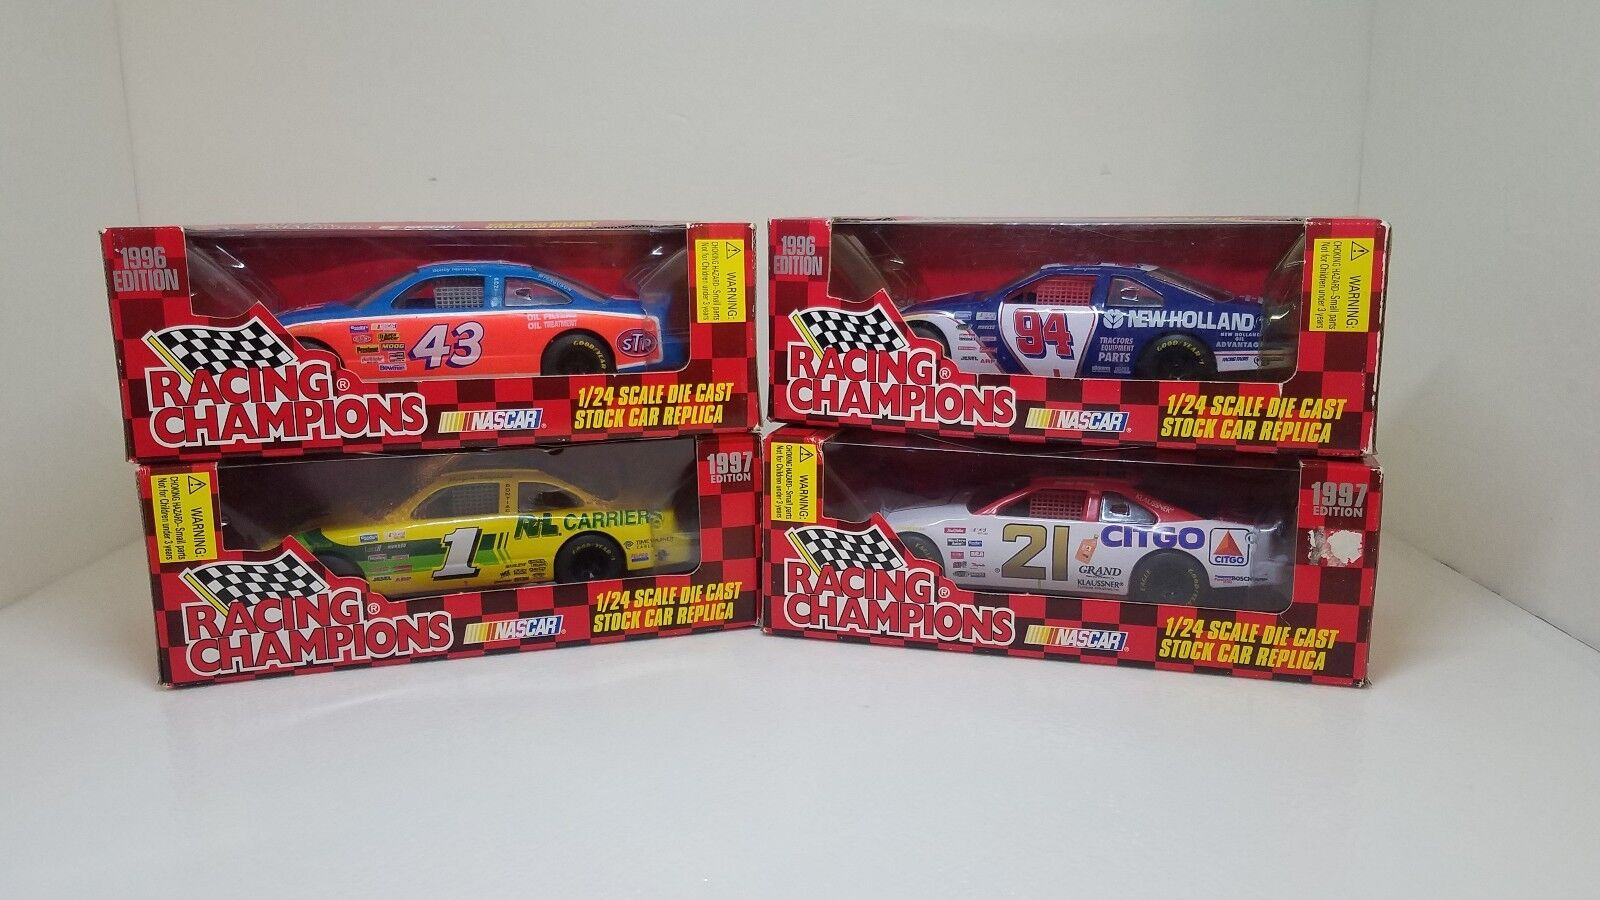 LOT 4 Racing Champions 1 24 Die Cast Stock Car Replicas Nascar  1  21  43  94